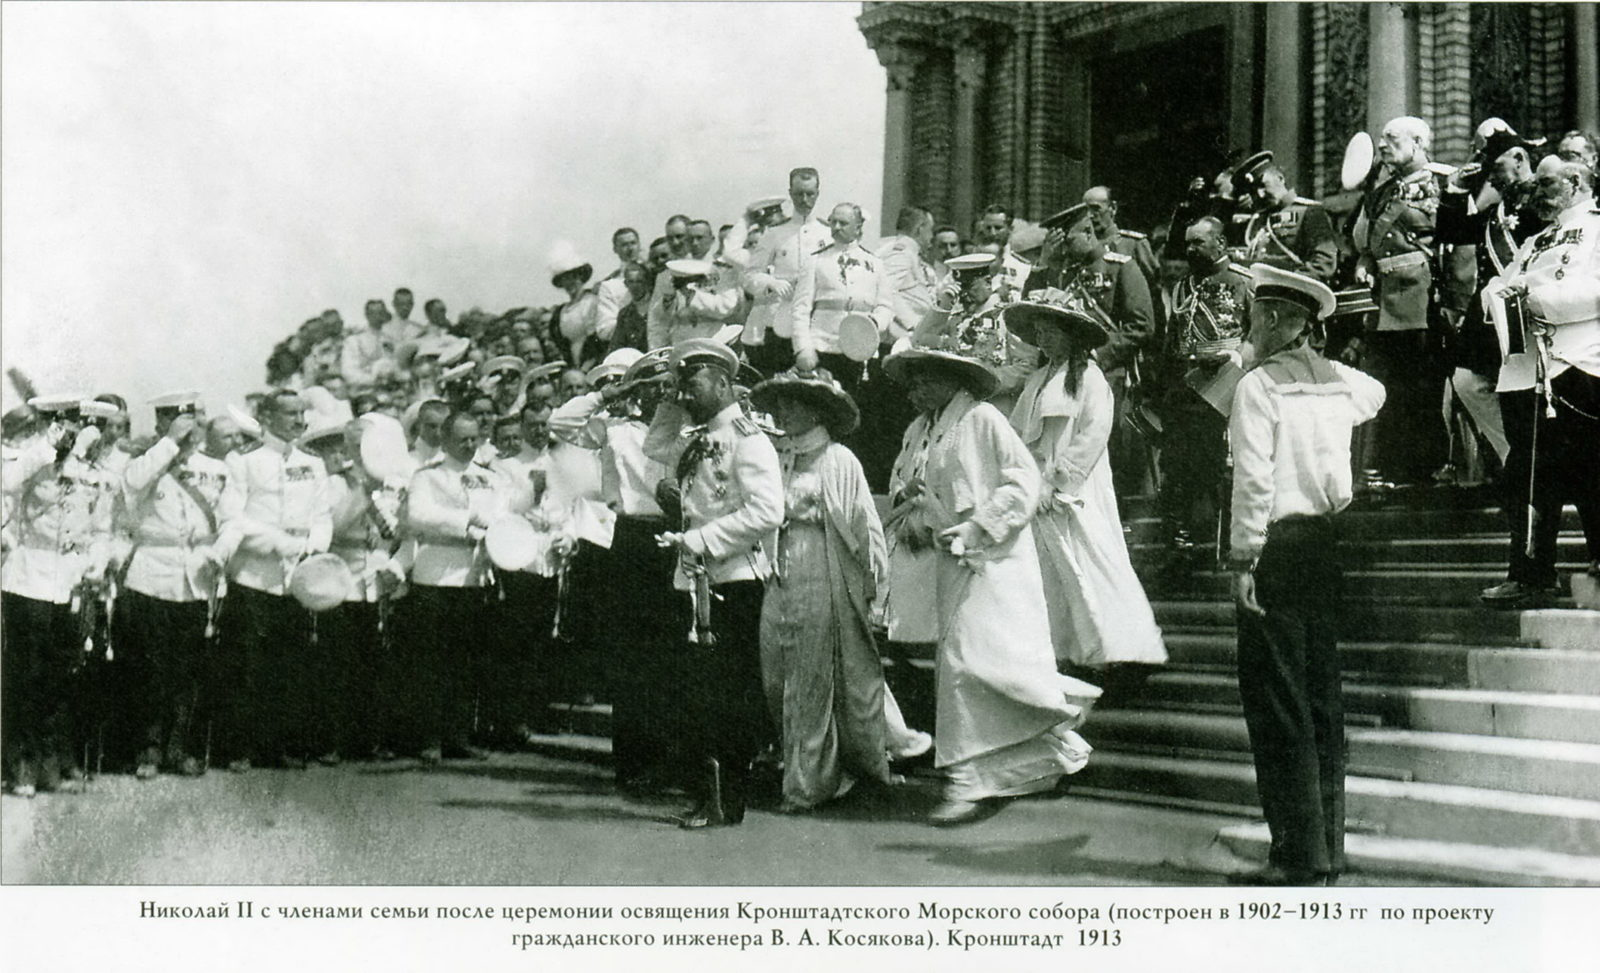 Emperor Nicholas II and his family after the consecration ceremony of the Kronstadt Naval Cathedral. 1913 year.